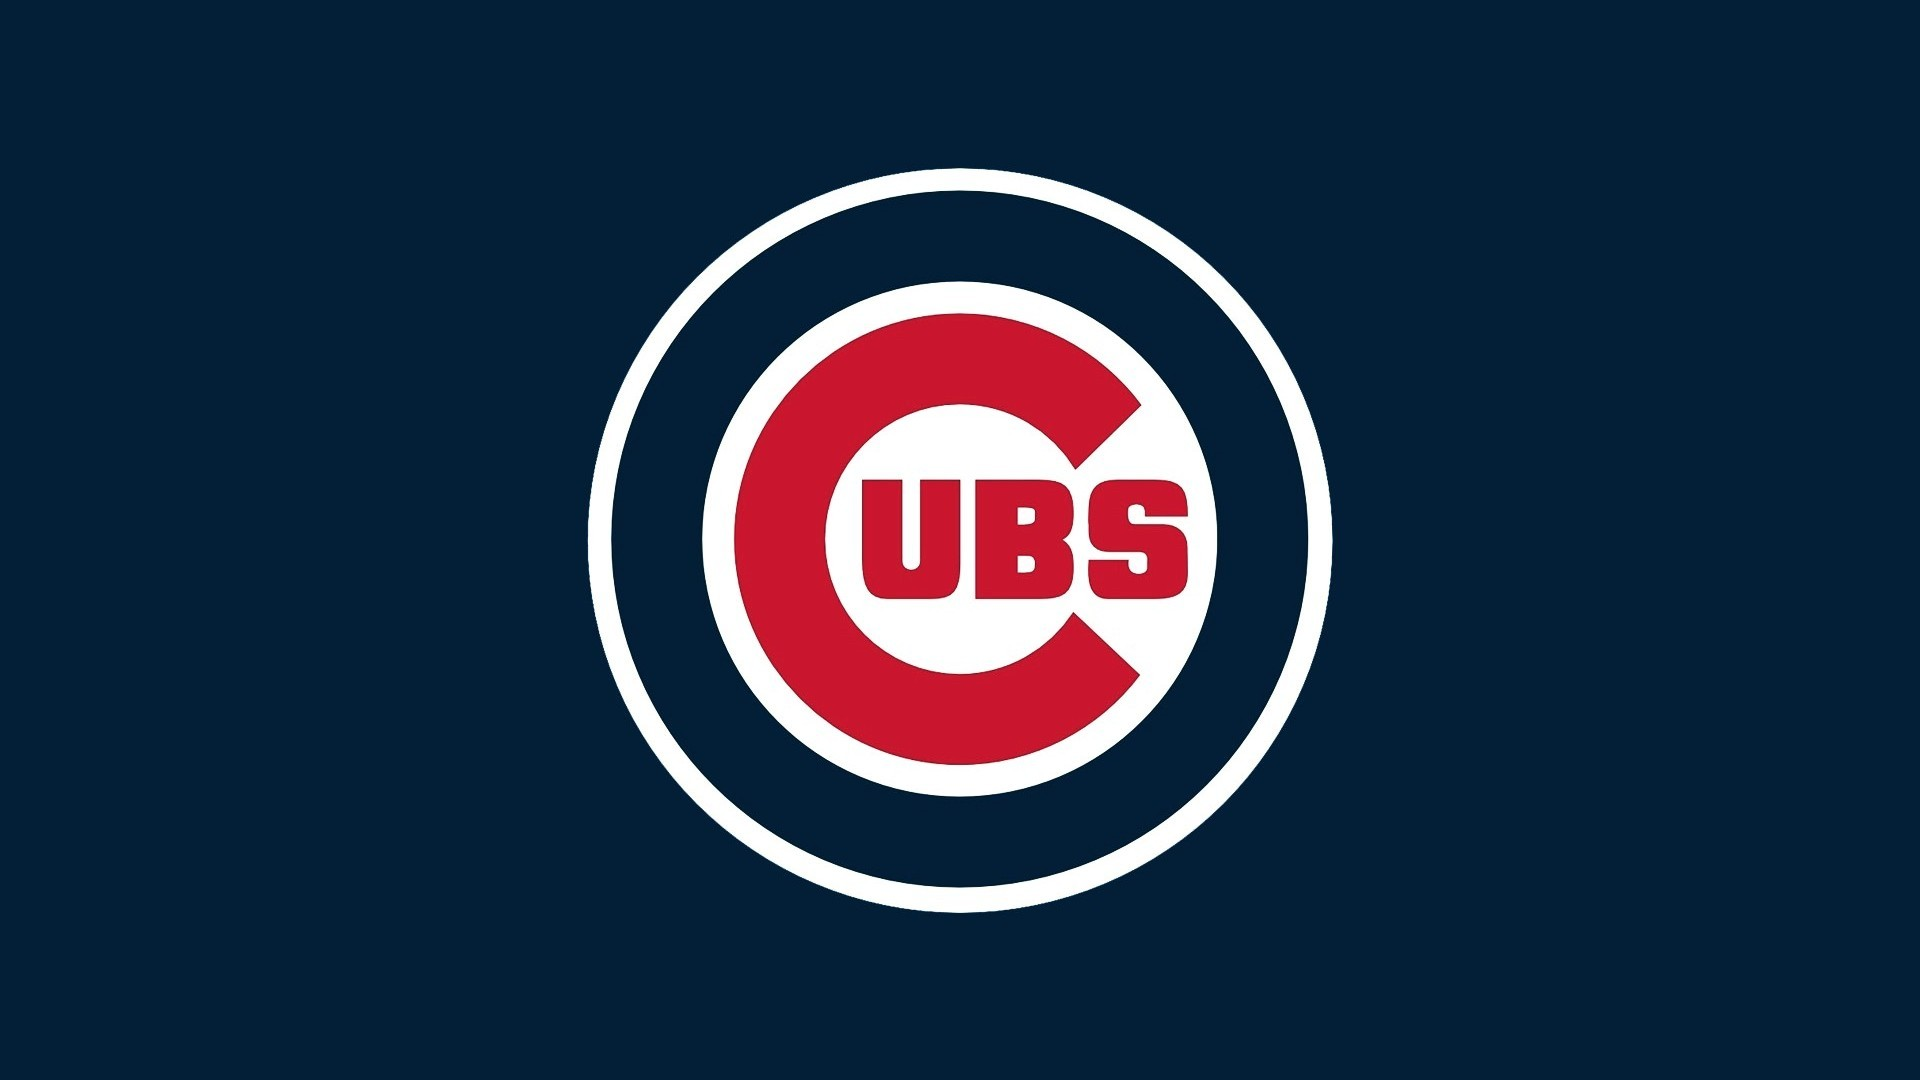 Chicago Cubs Wallpaper Iphone 6 Chicago Cubs Wallpapers 183 ①